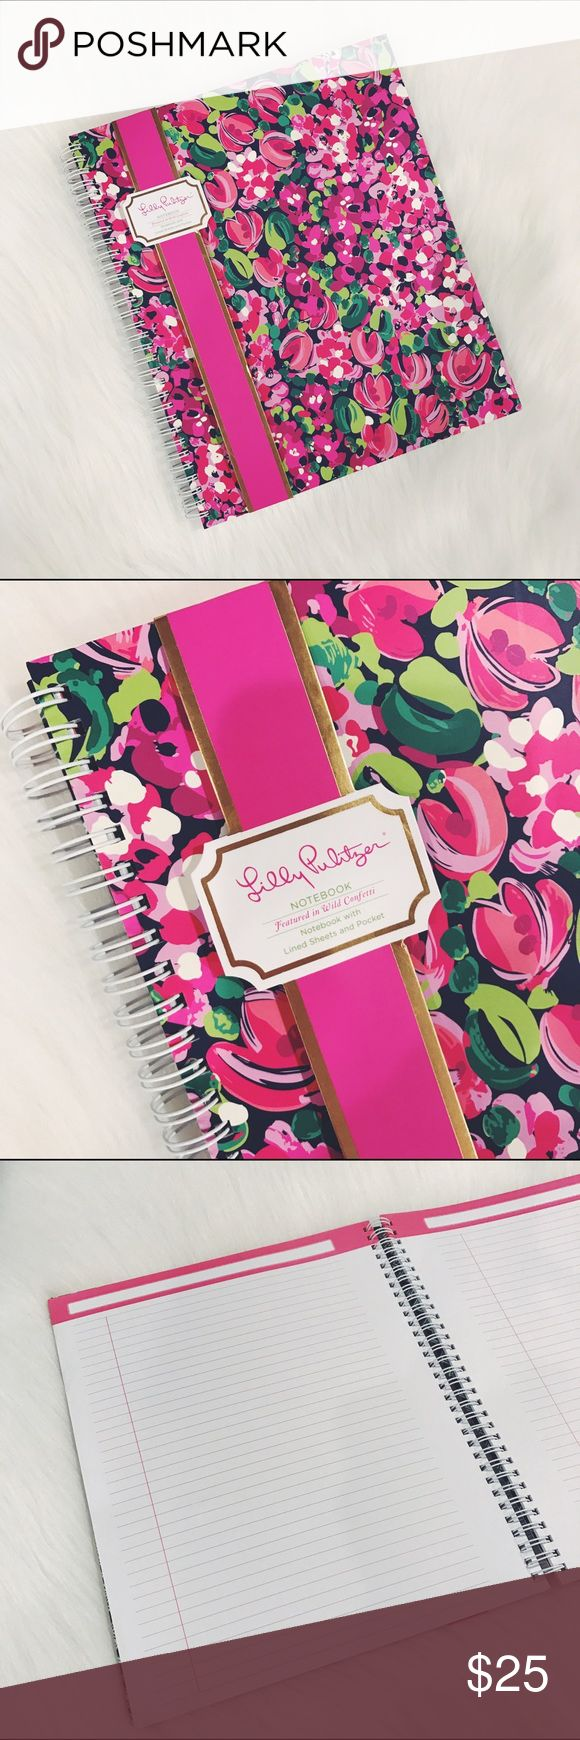 "🎄SALE🎄Lilly Pulitzer Confetti Spiral Notebook Wild Confetti, large Hardcover notebook with spiral and lined sheets, size small/medium, perfect for a purse or backpack. Measurements: 9 1/4""x 11"" brand new.  ✅Check my other Kate Spade and Lilly Pulitzer items, great for Christmas Gifts.            🎄20% off bundle 2 items or more!🎄                             •NO TRADING                             •smoke free                             •fast shipper  ❤️Ask for lower shipping! Today only❤️…"